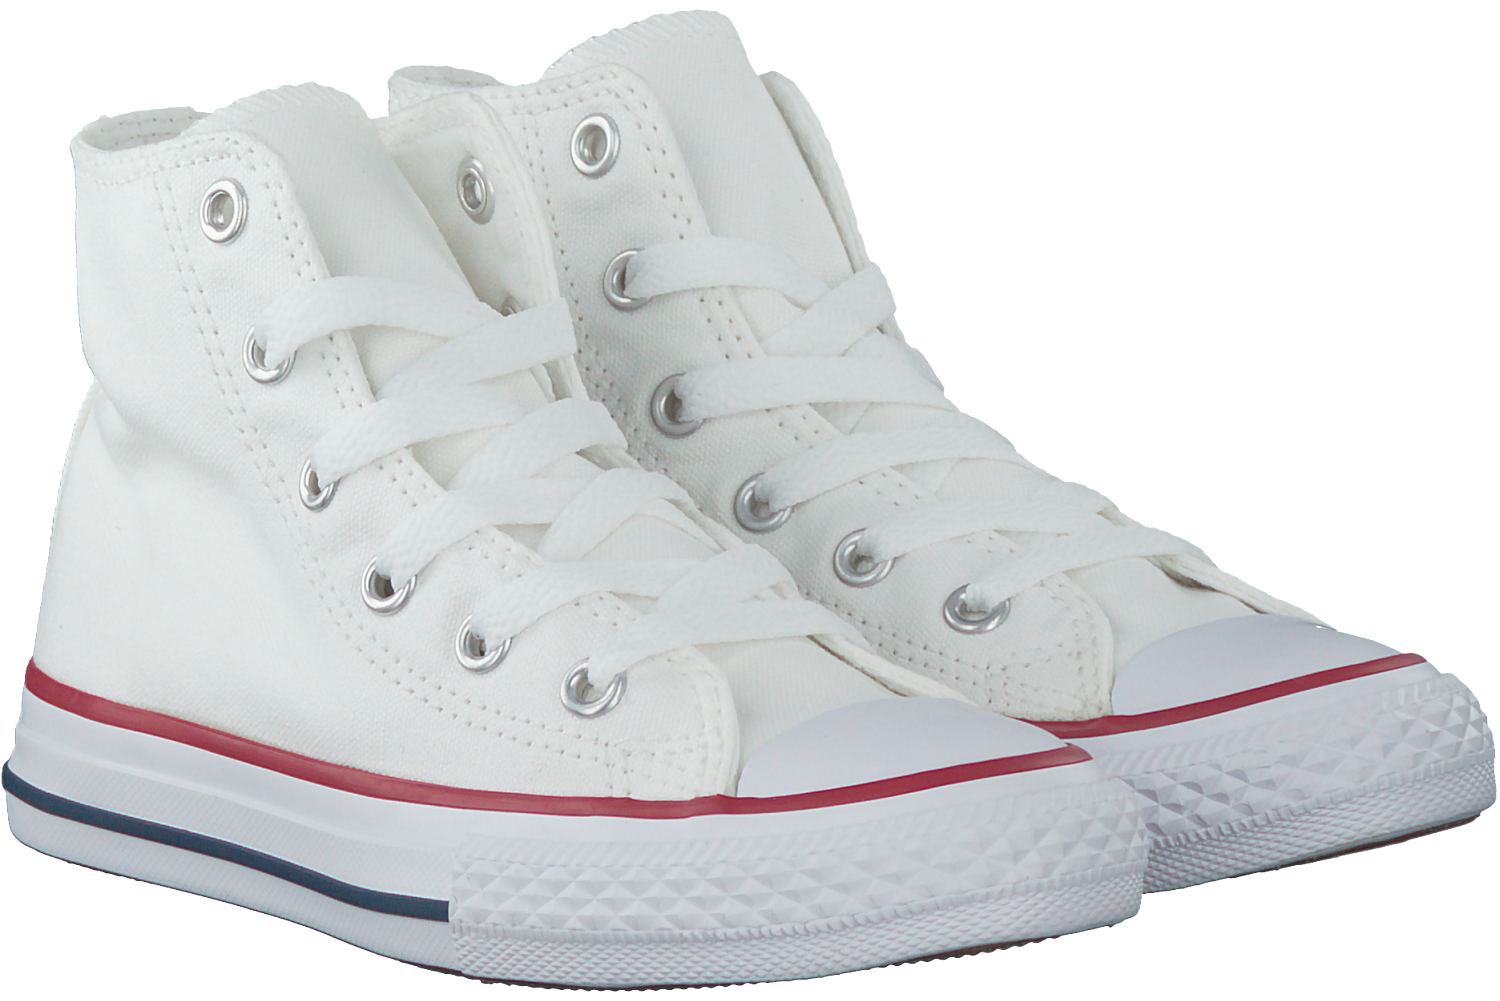 8f0df018772 Witte CONVERSE Sneakers CHUCK TAYLOR ALL STAR HI - Omoda.nl